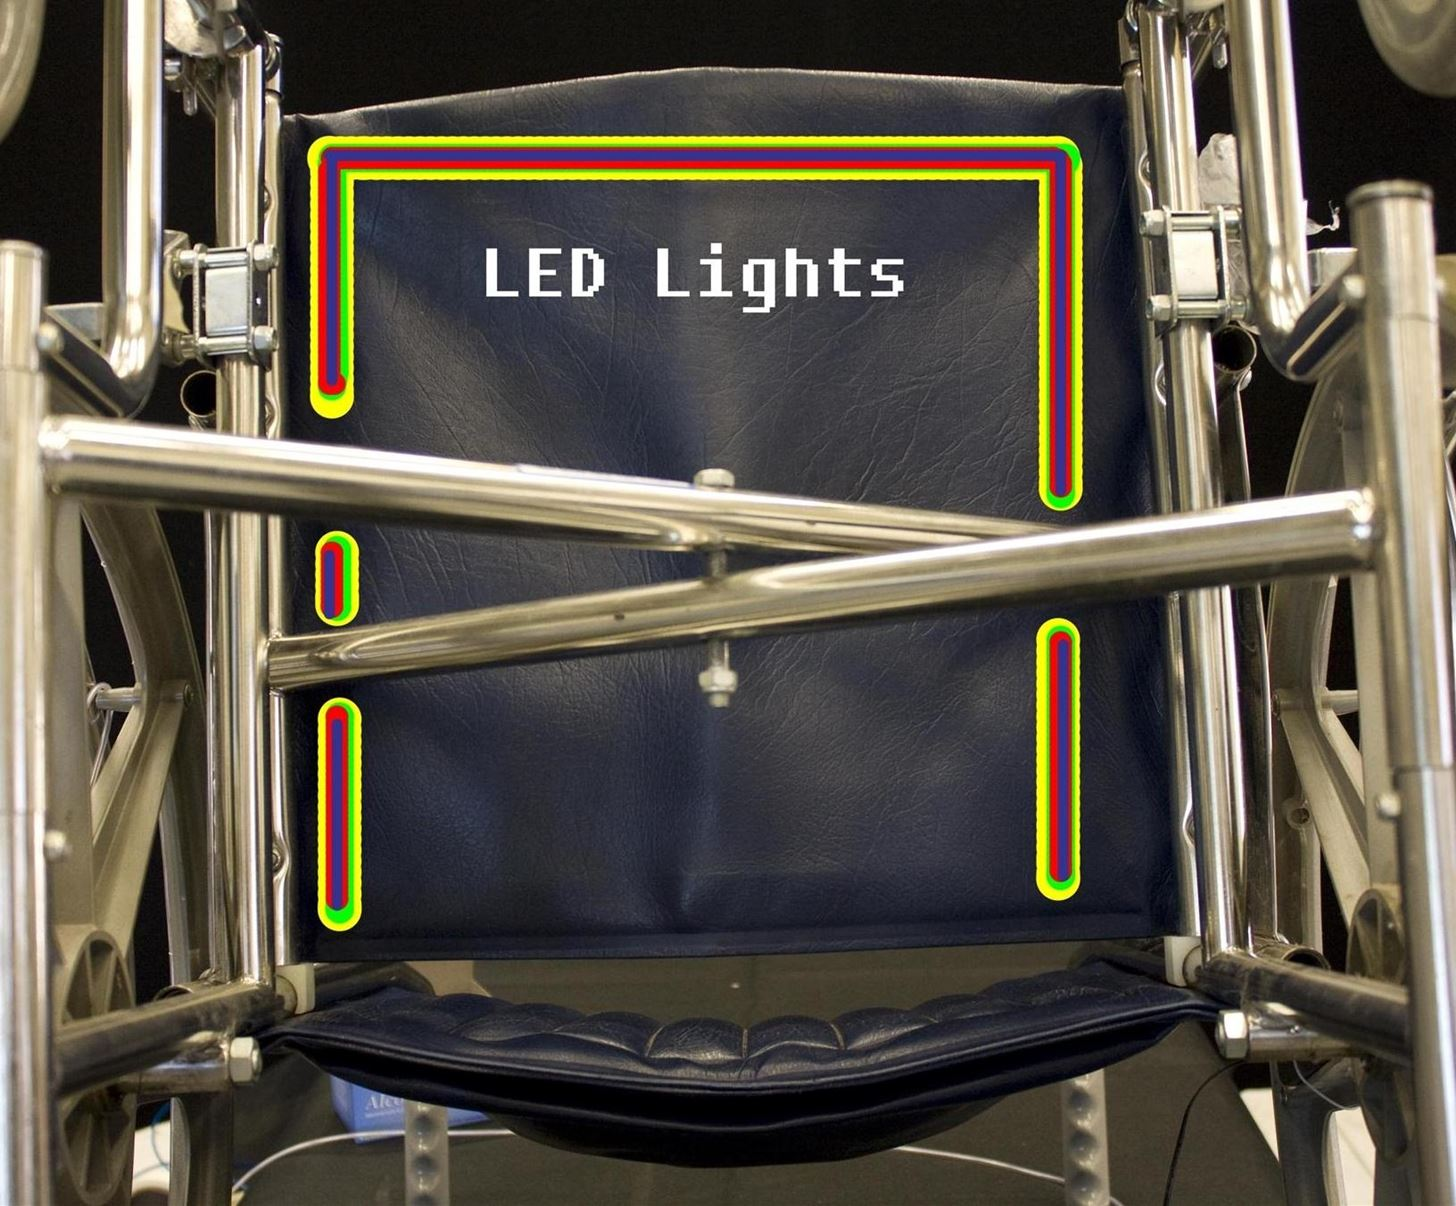 illuminate wheelchair for safety using el wire led strip.w1456?resize=665%2C551&ssl=1 ez lock wheelchair wiring diagram wiring diagram ez lock wheelchair wiring diagram at fashall.co